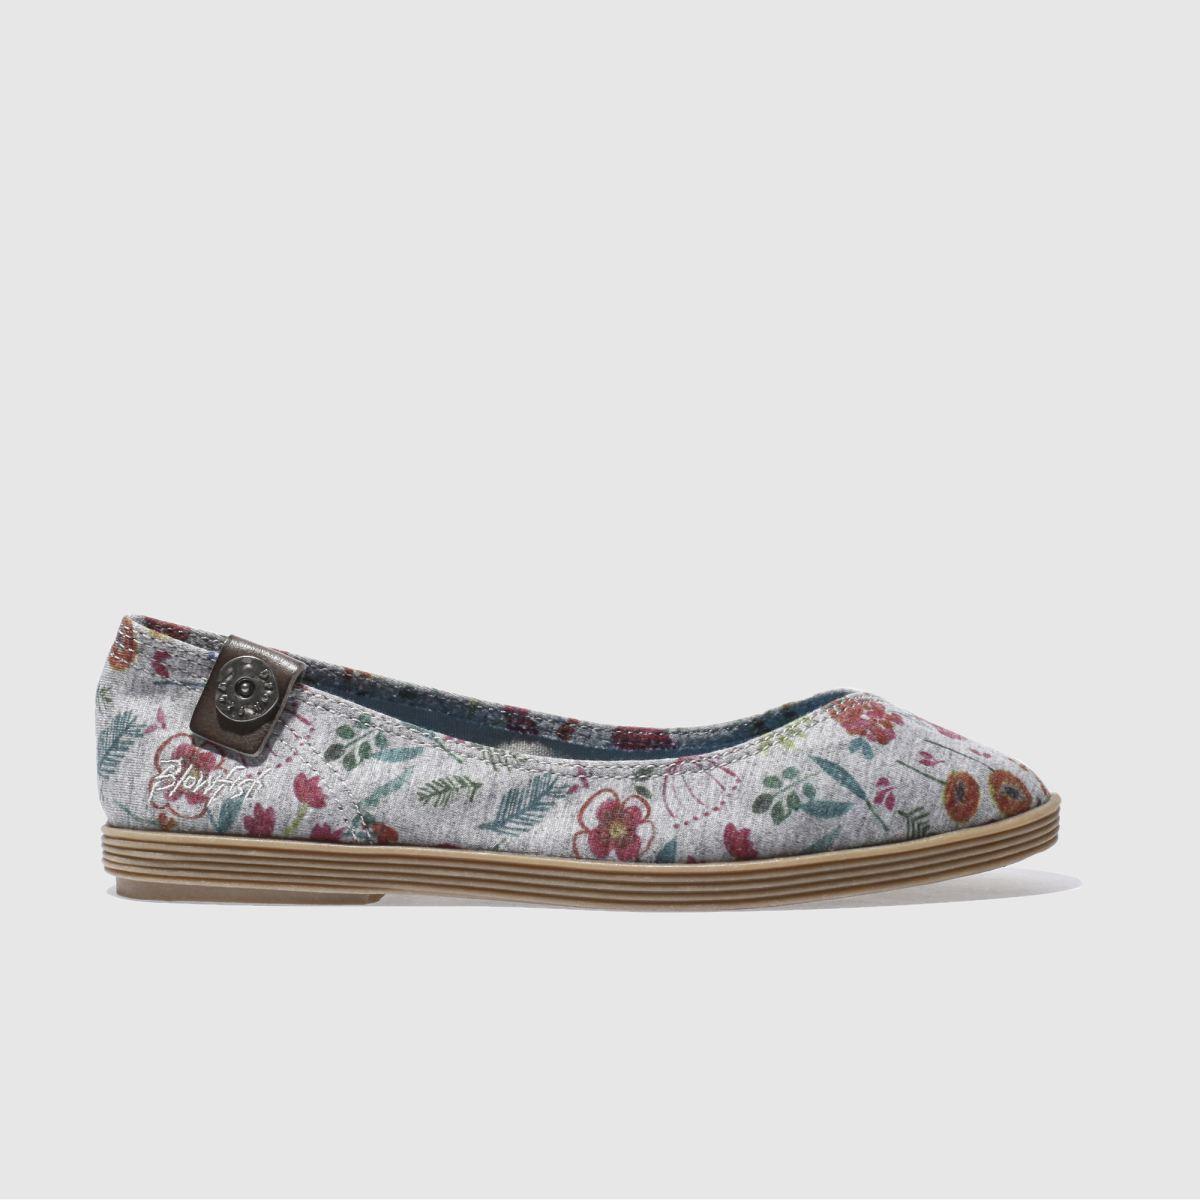 Blowfish Grey Gian Poppyfields Flat Shoes